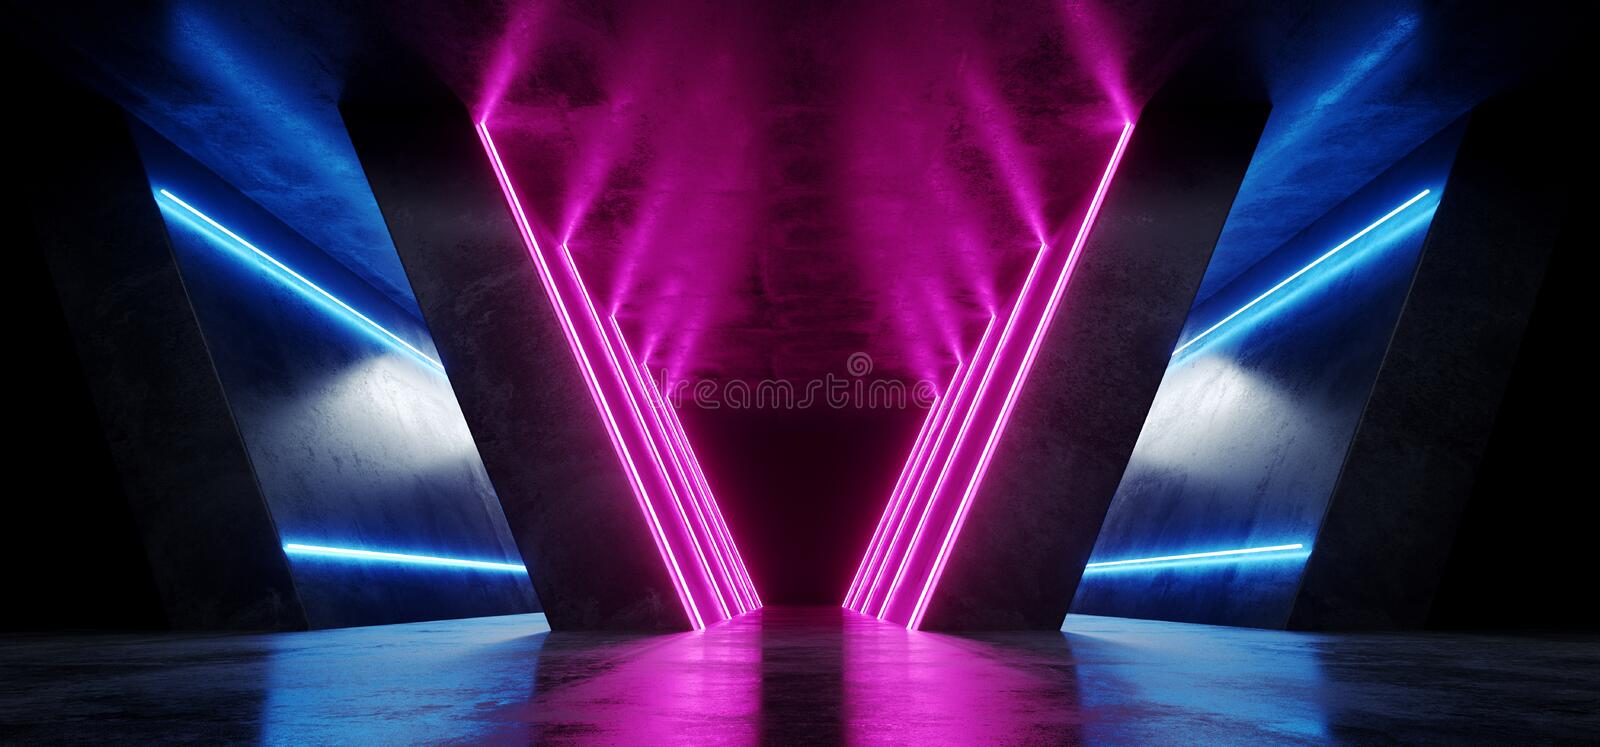 Futuristic Retro Neon Dance Stage Show Fashion Alien Sci Fi Modern Dark Grunge Reflective Concrete Empty Space Podium Background. Glowing Lines 3D Rendering vector illustration